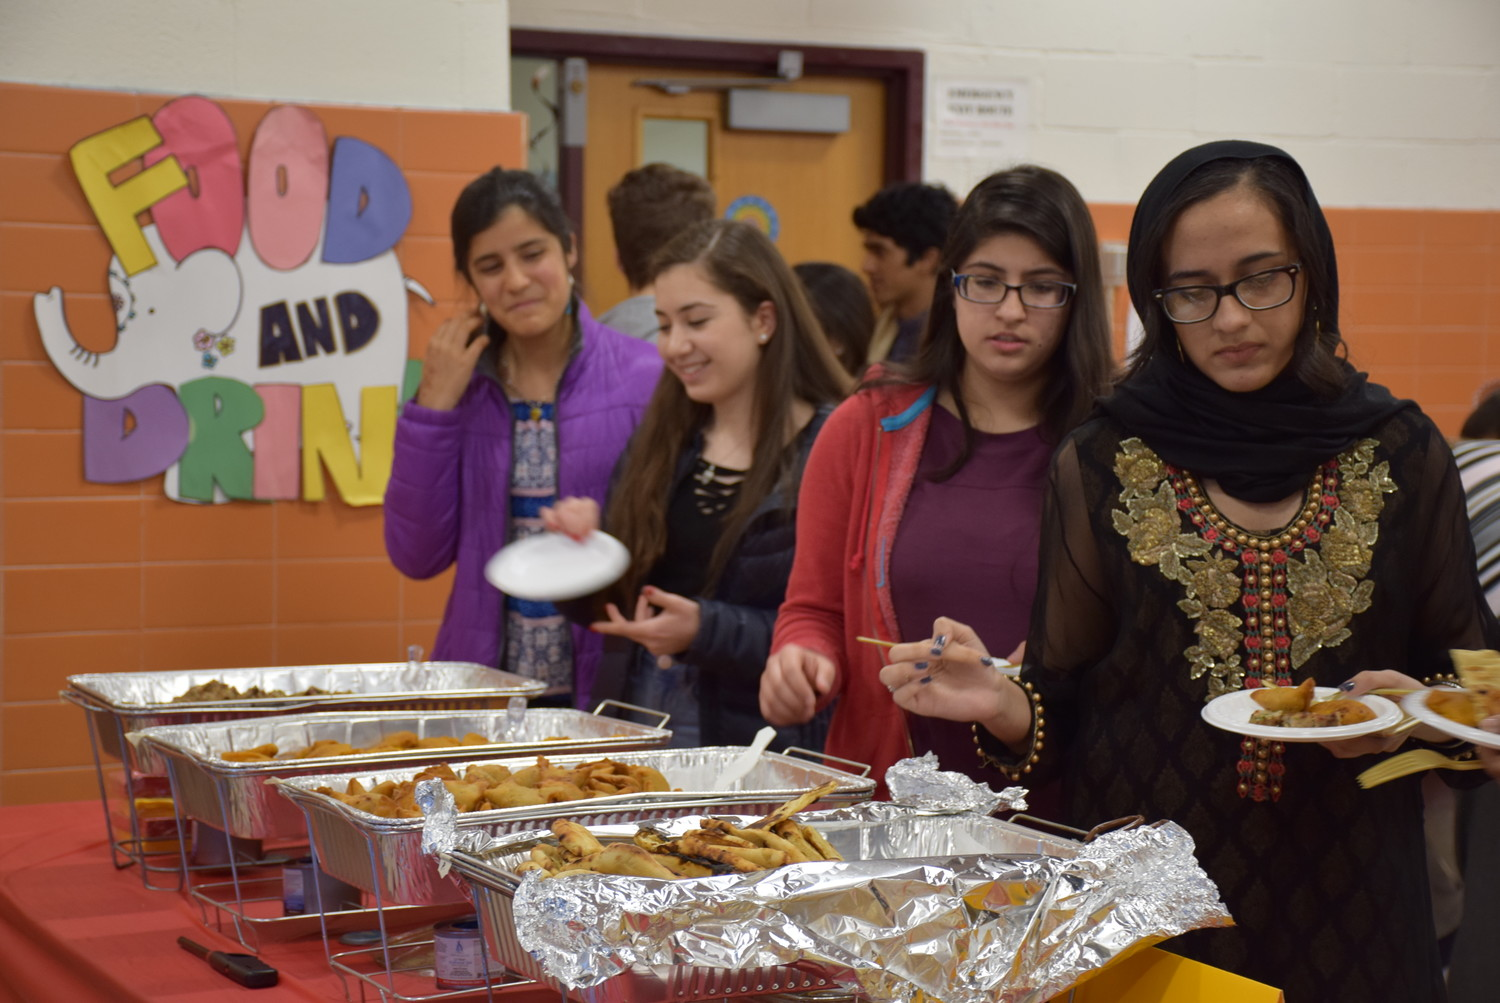 Traditional foods such as samosas, naan, kebabs and banana chips were served at the March 1 event.